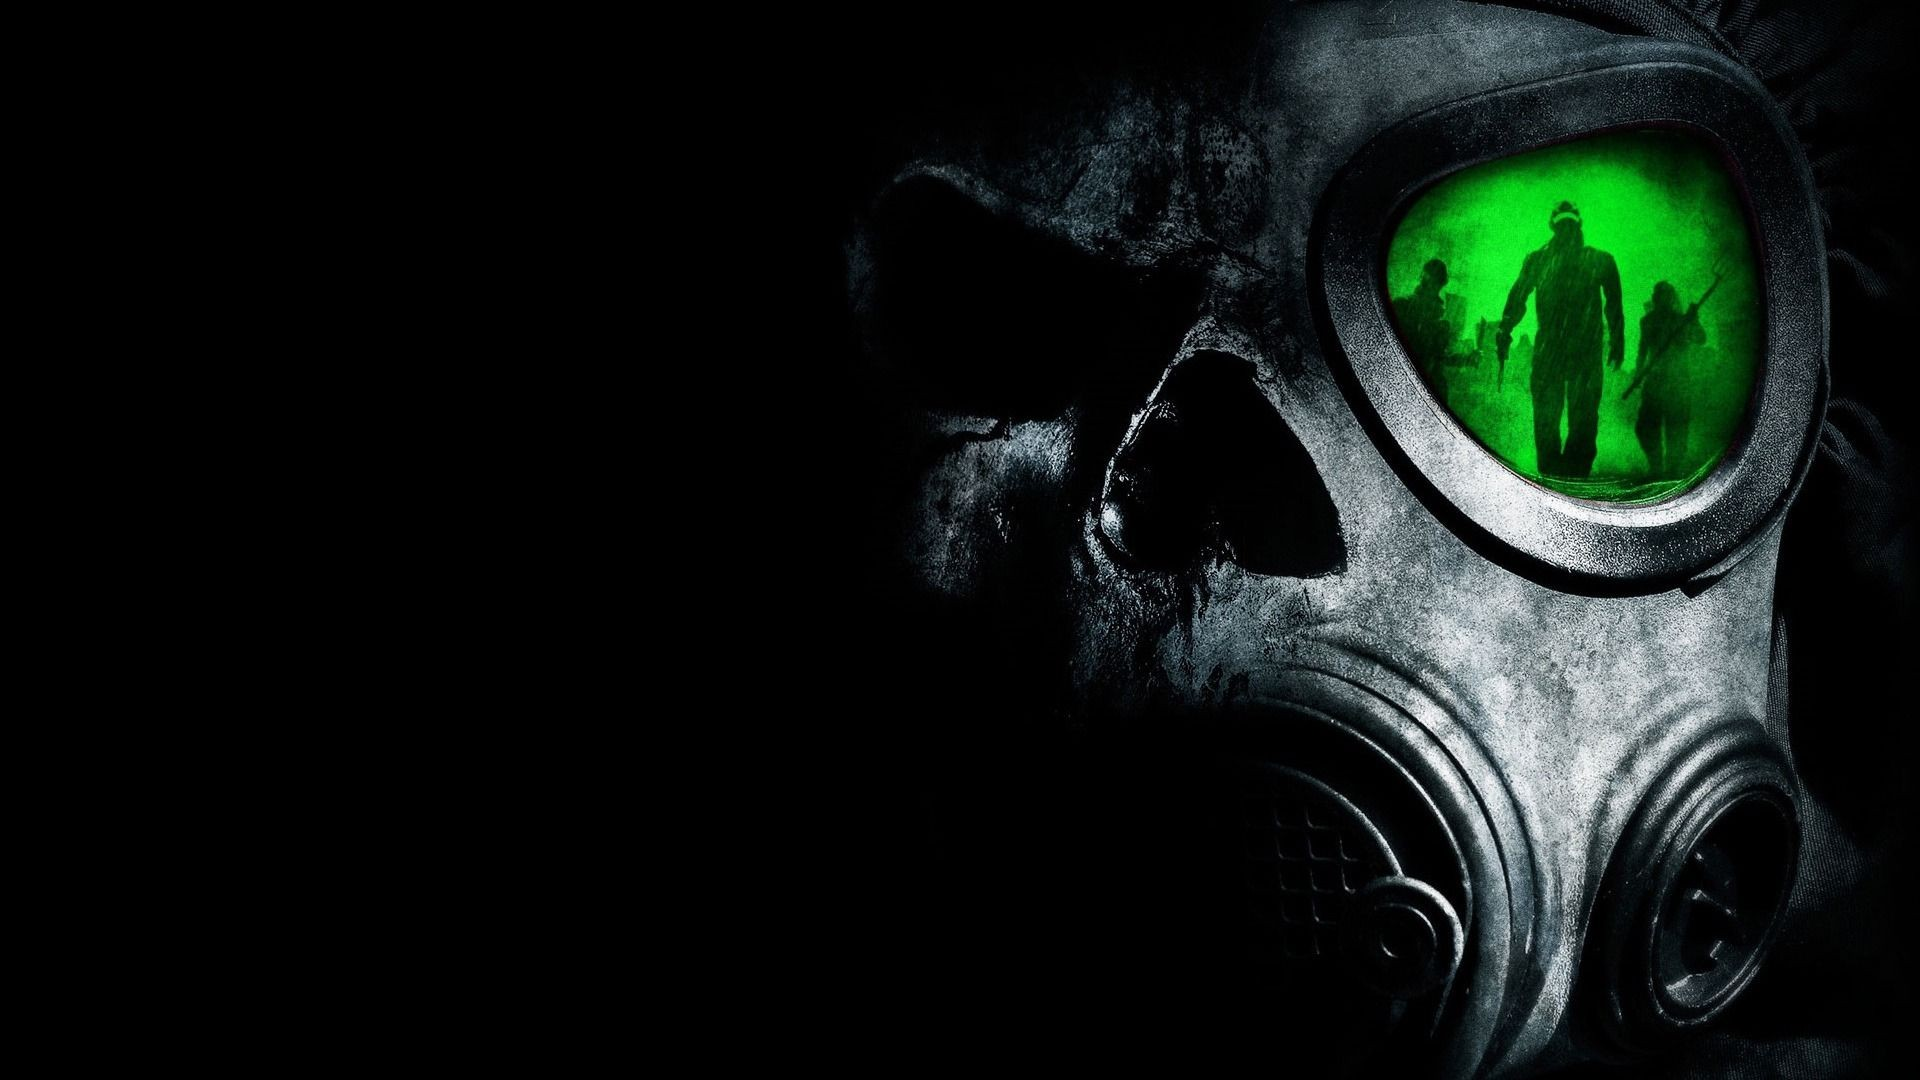 Horror Hd Wallpapers For Android: 58+ Scary Wallpapers ·① Download Free Beautiful High